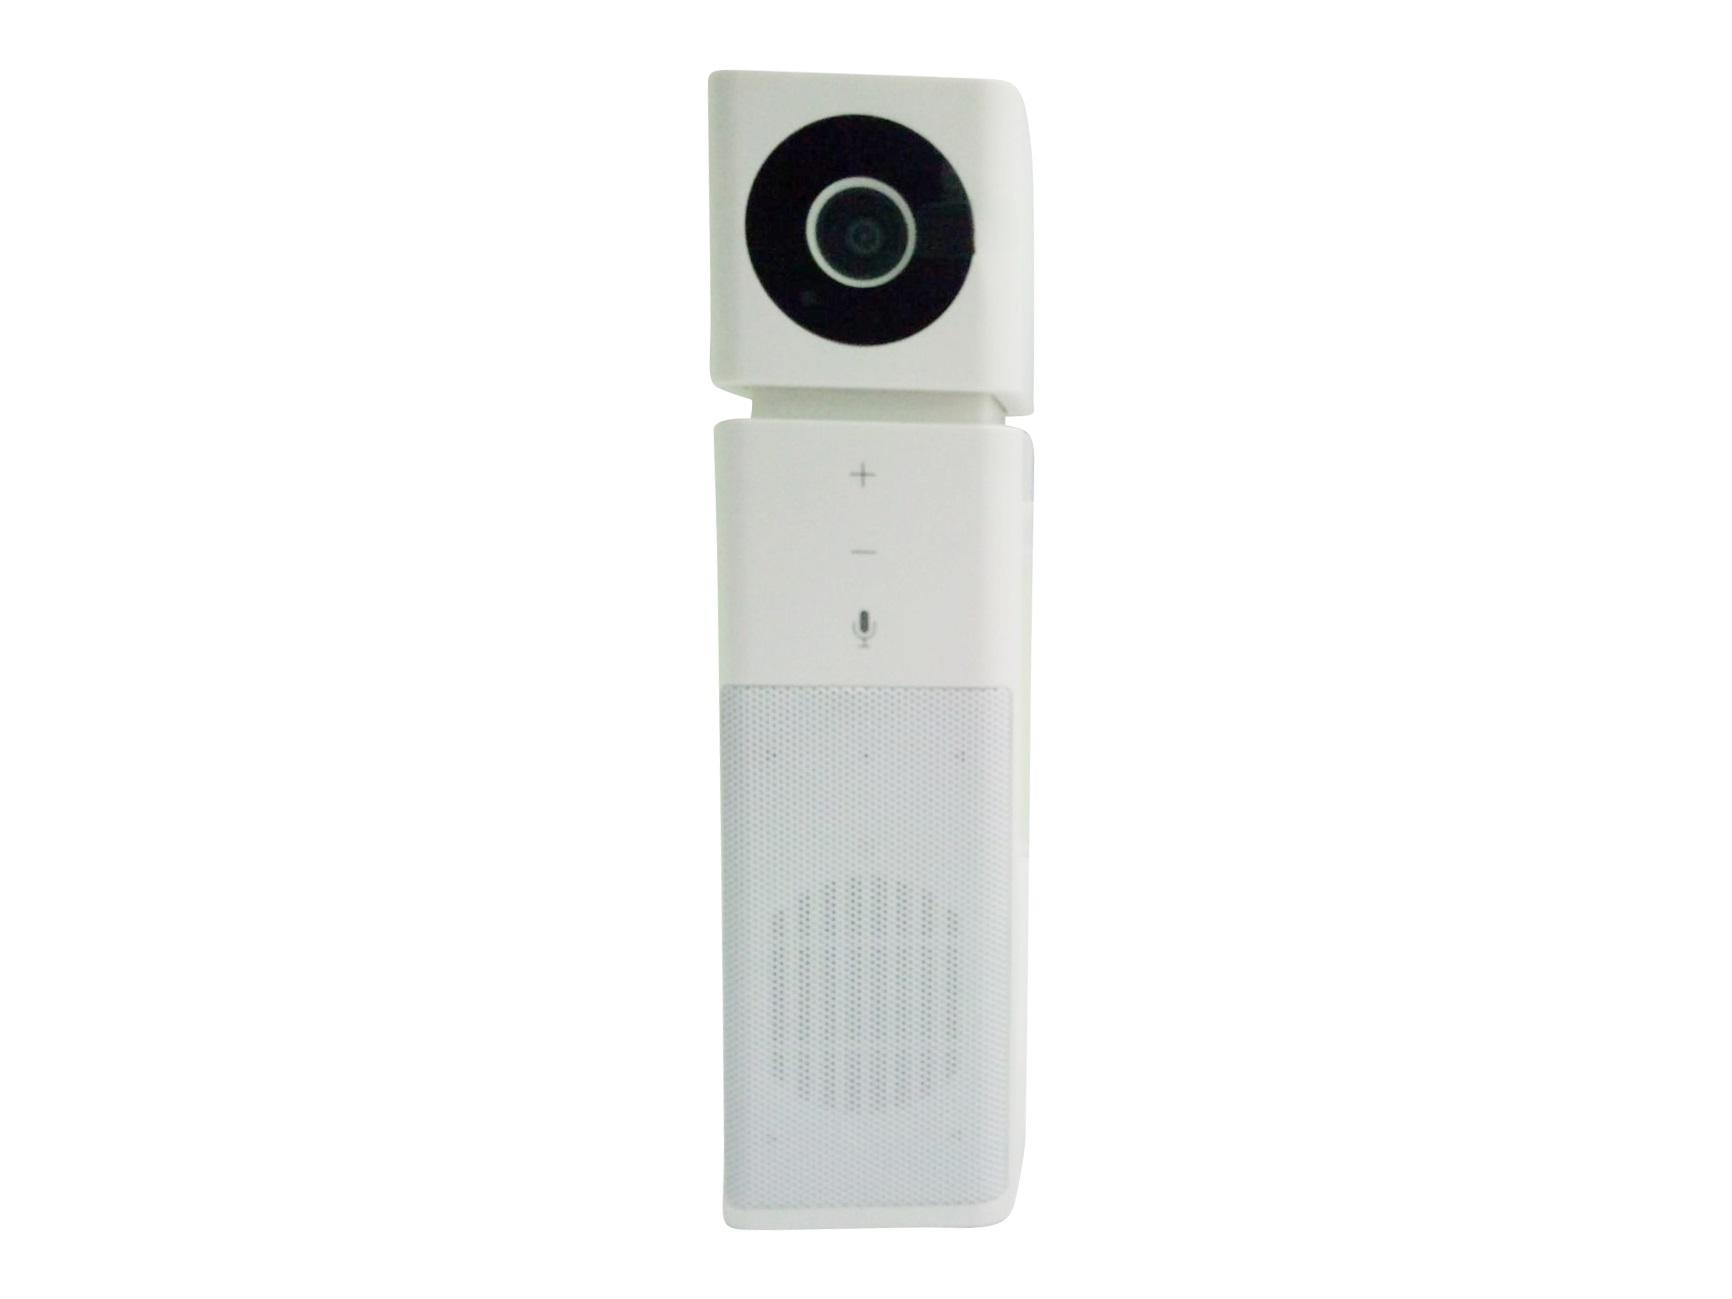 HuddleCamHD HC-GO-WH 110 Degree FOV Lens/USB 2 Meeting Camera w Microphone/Speaker (White)